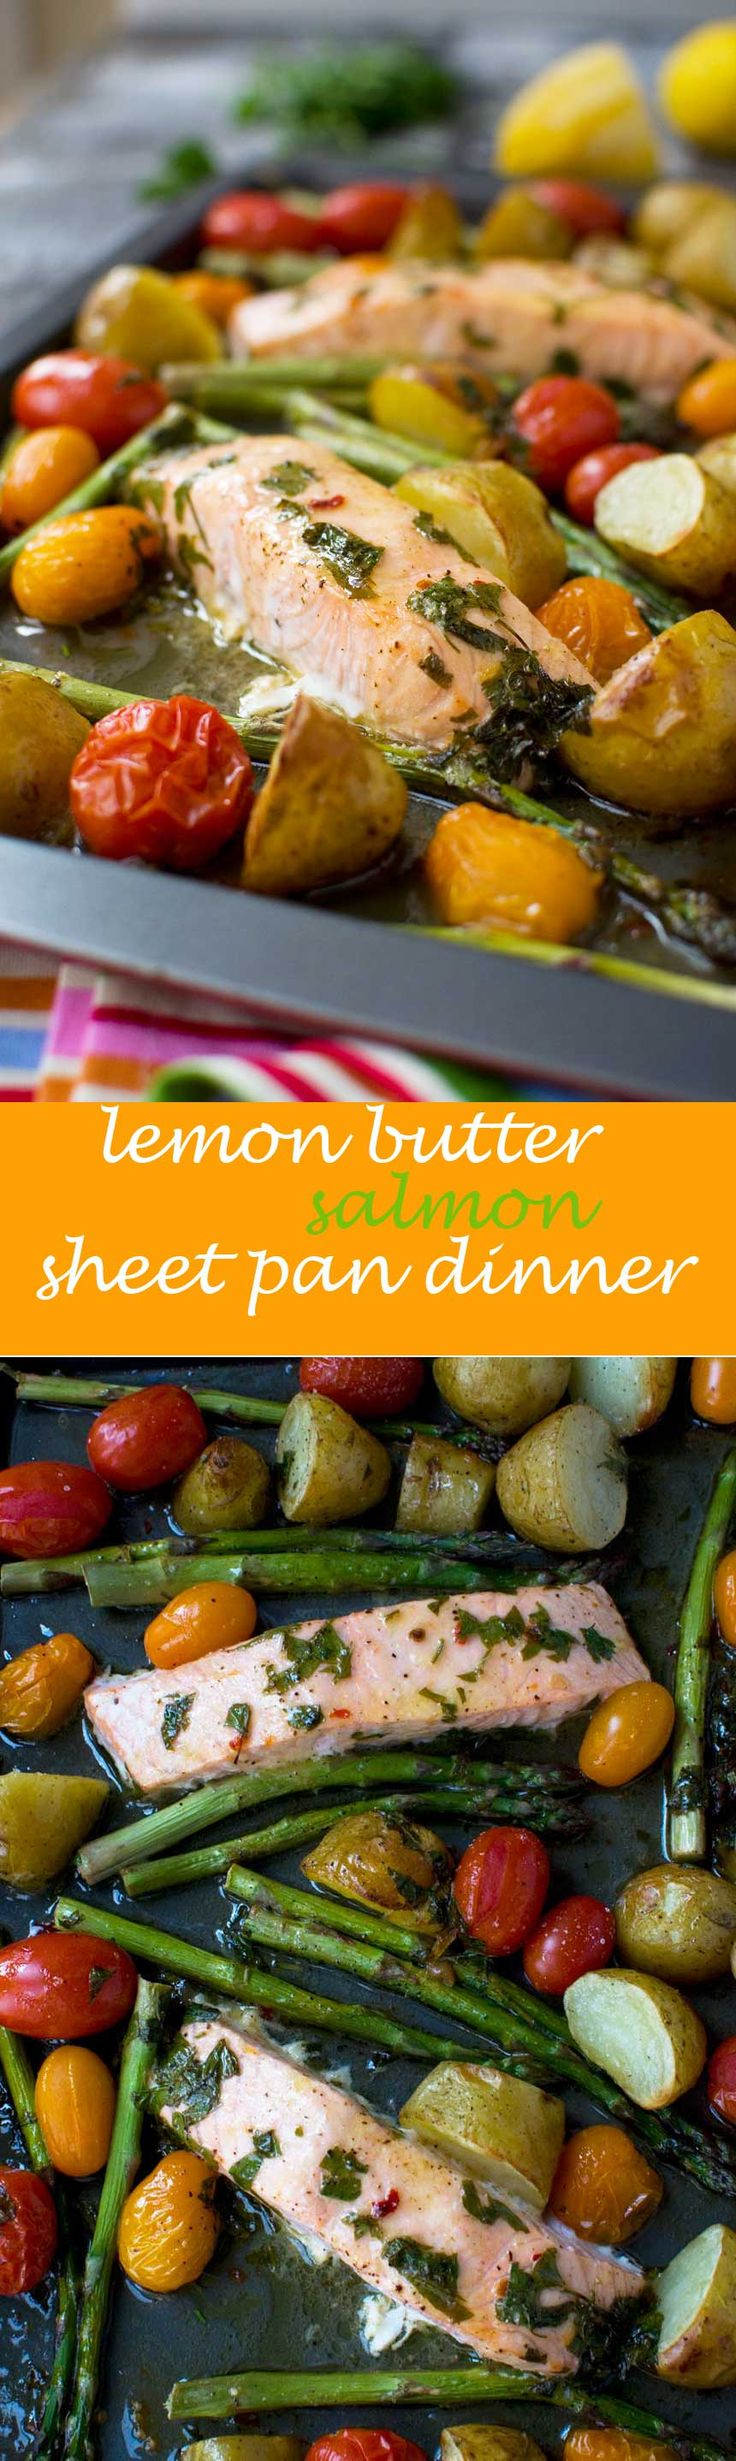 Lemon butter sheet pan salmon with asparagus and potatoes